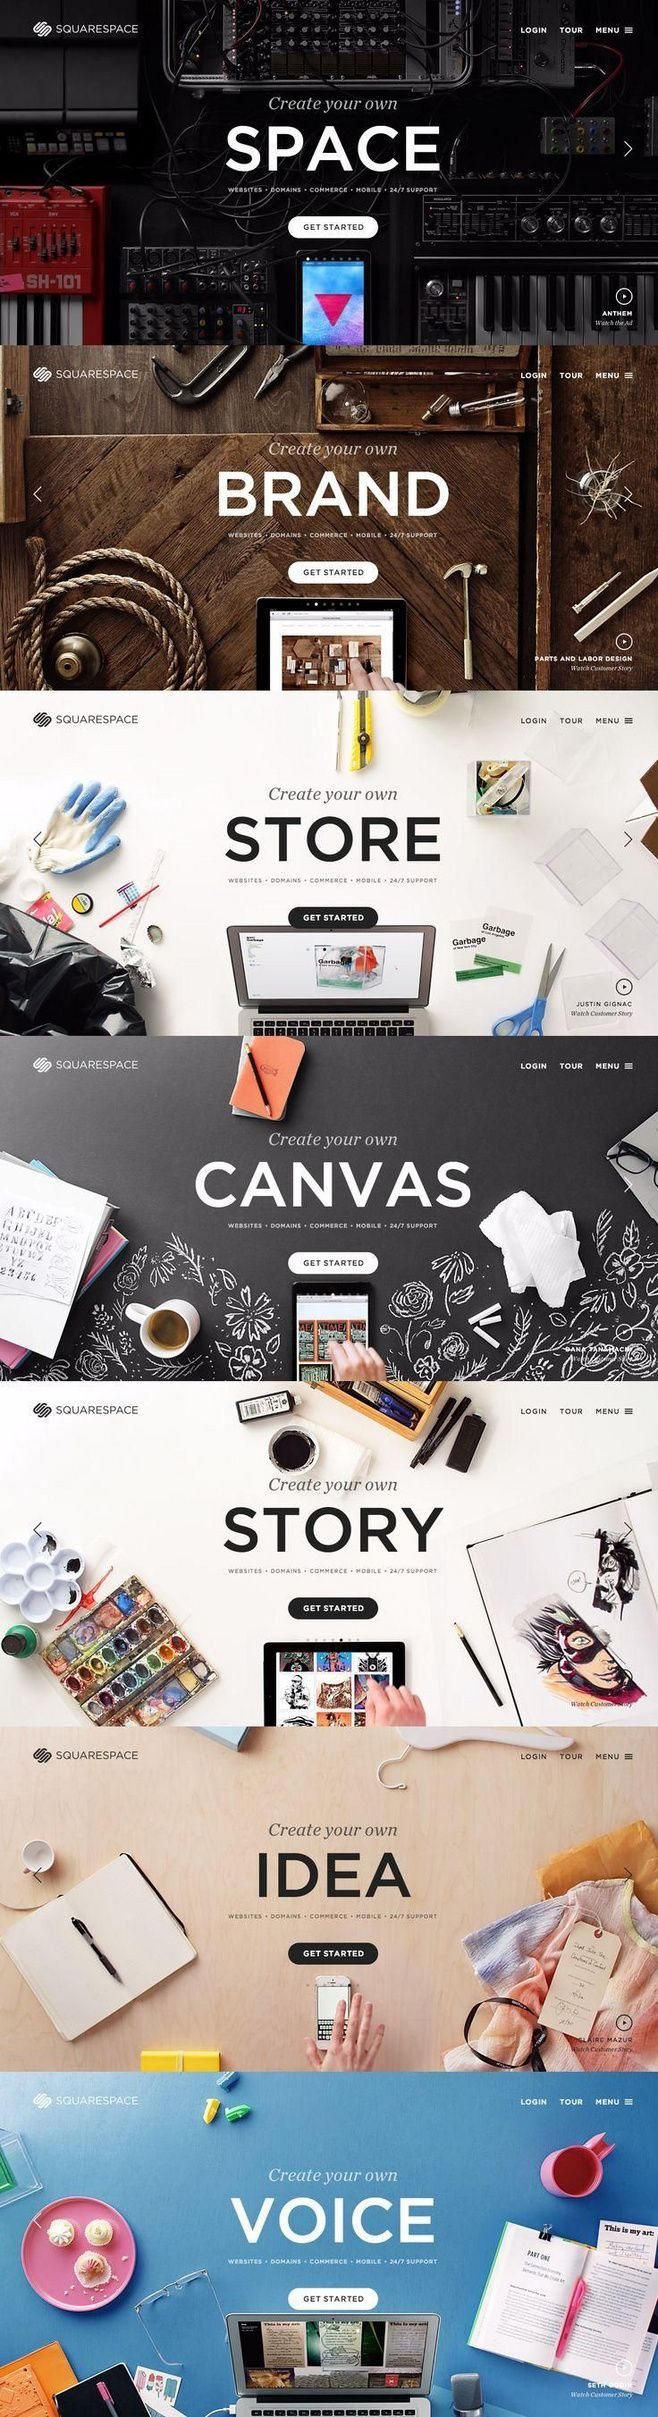 Although it only show the homepage, I like the various different layouts and how it's centered around the focal word. Each layout has a balanced composition as well as a specific color palette. It also gives you different type of moods that demonstrate the kind of website that you might want to promote.: